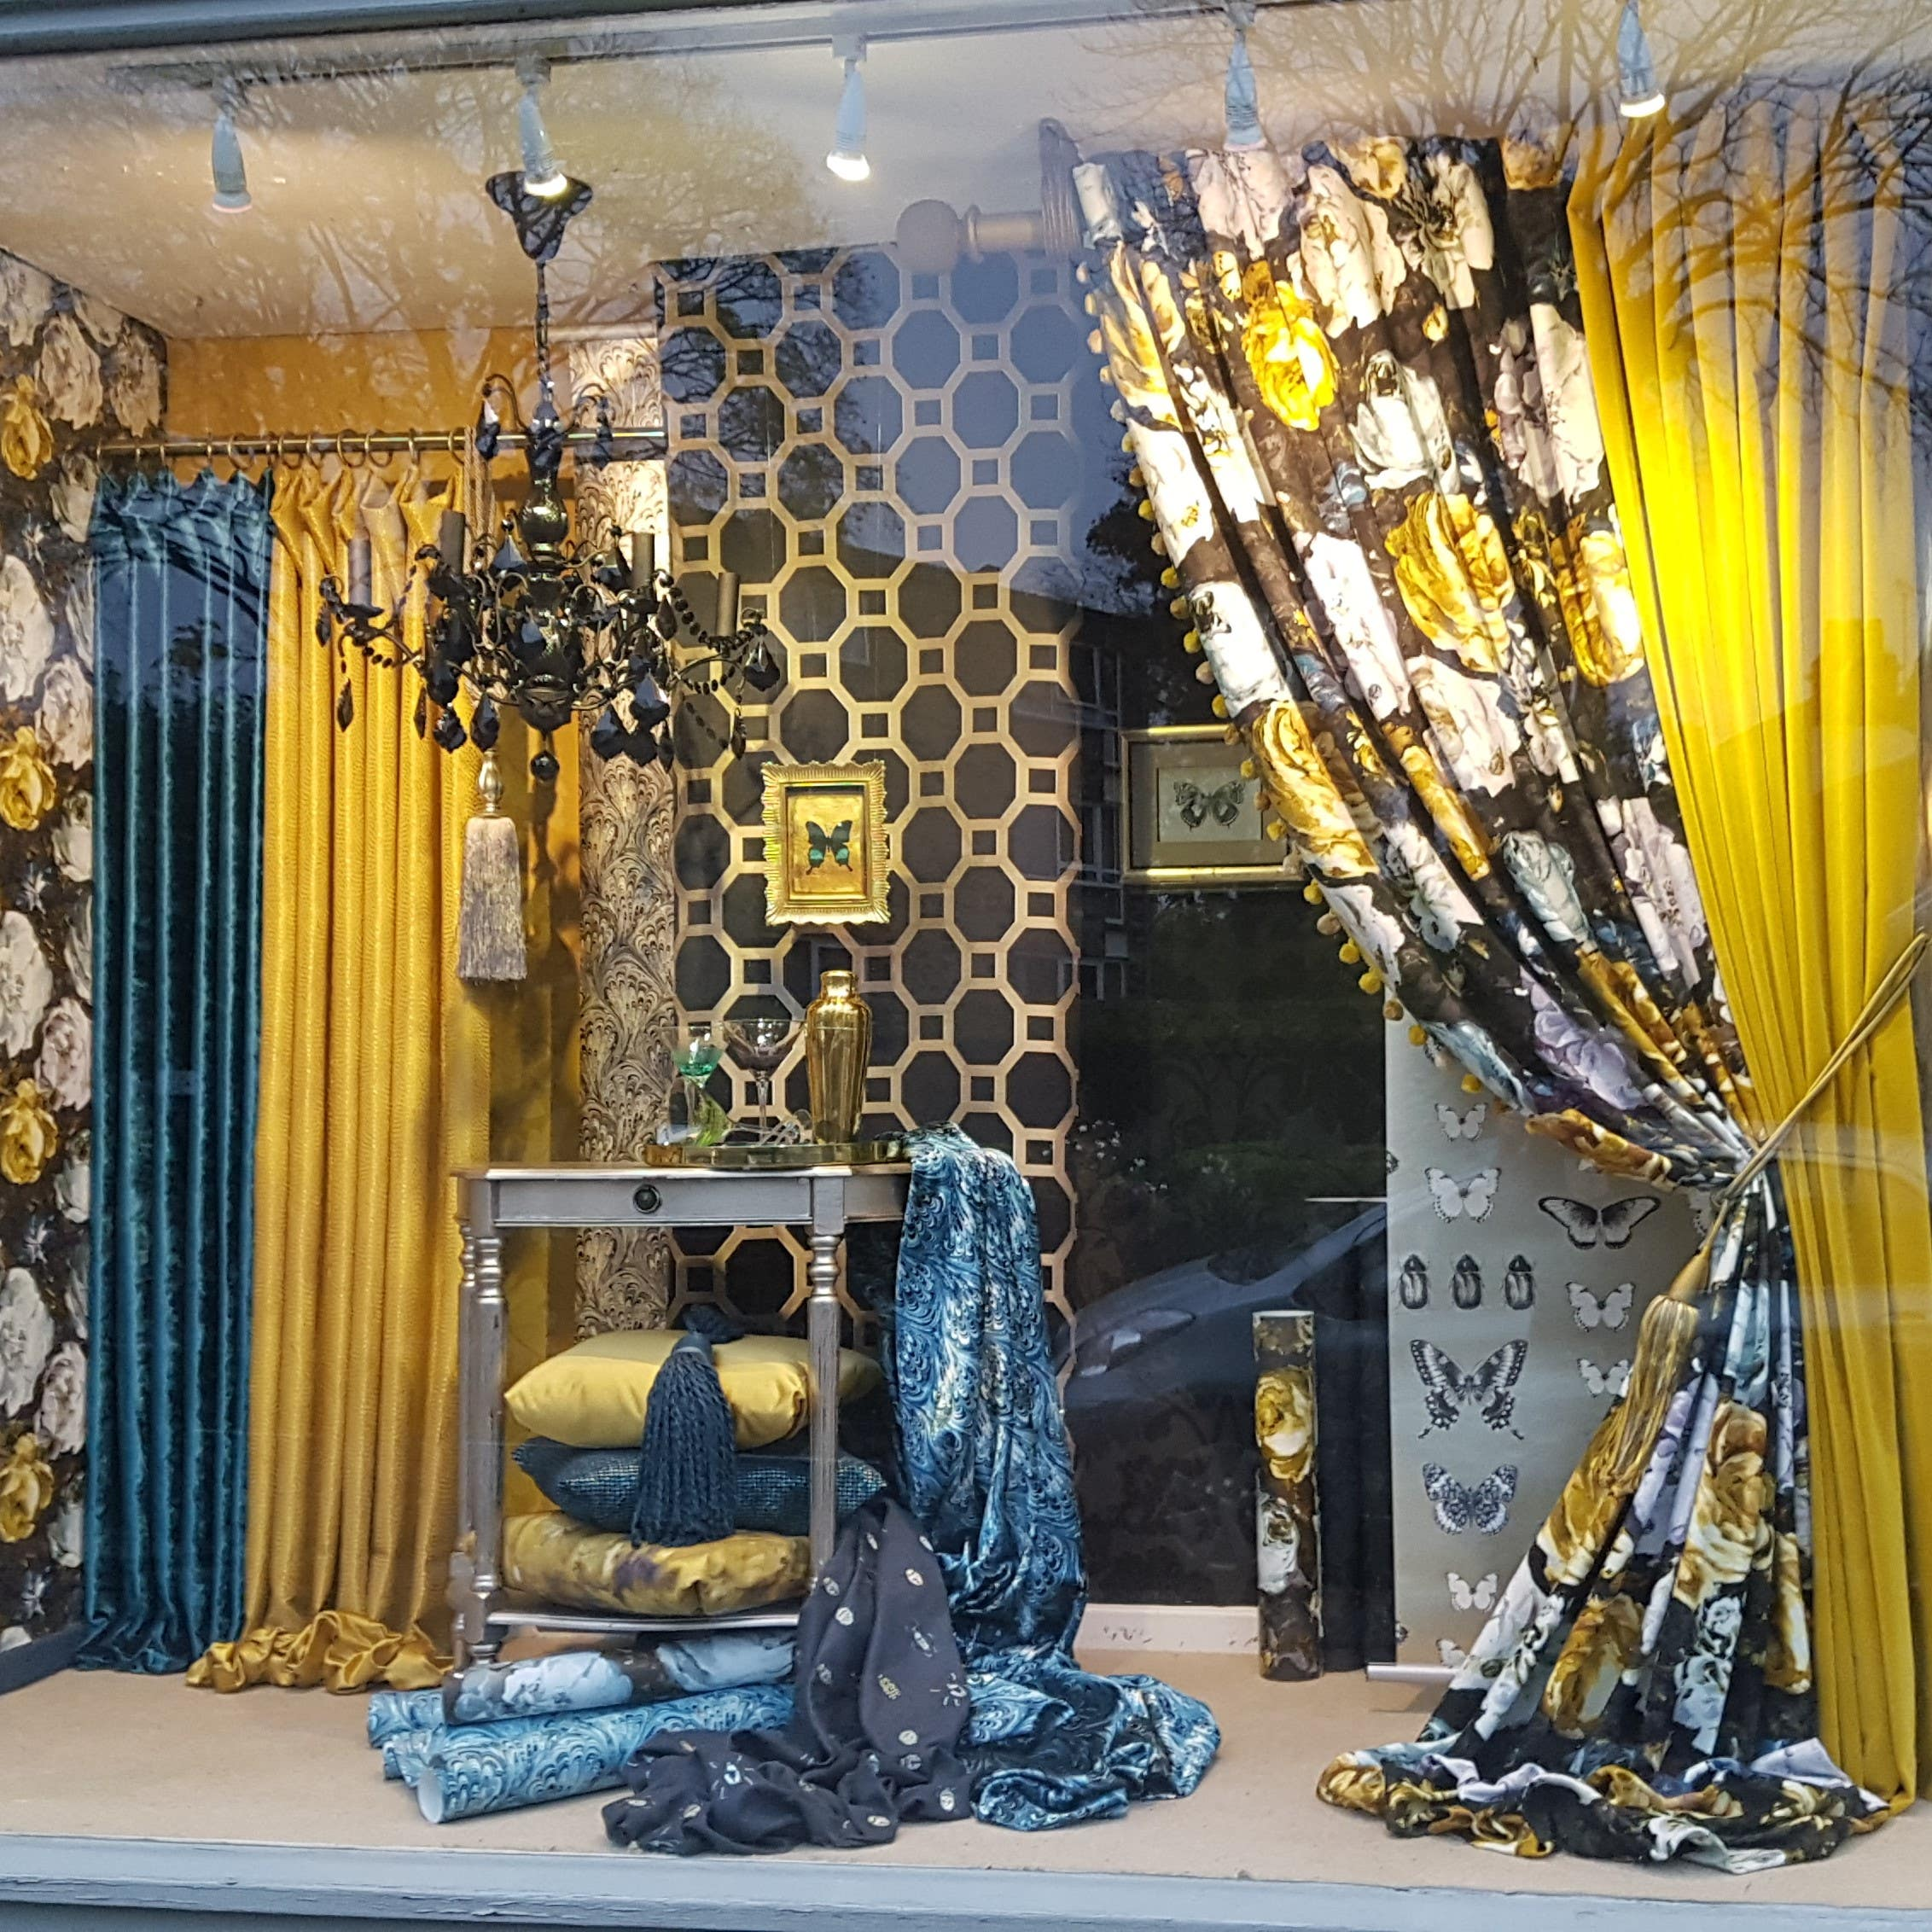 Using lengths of wallpaper & fabric to create a room setting